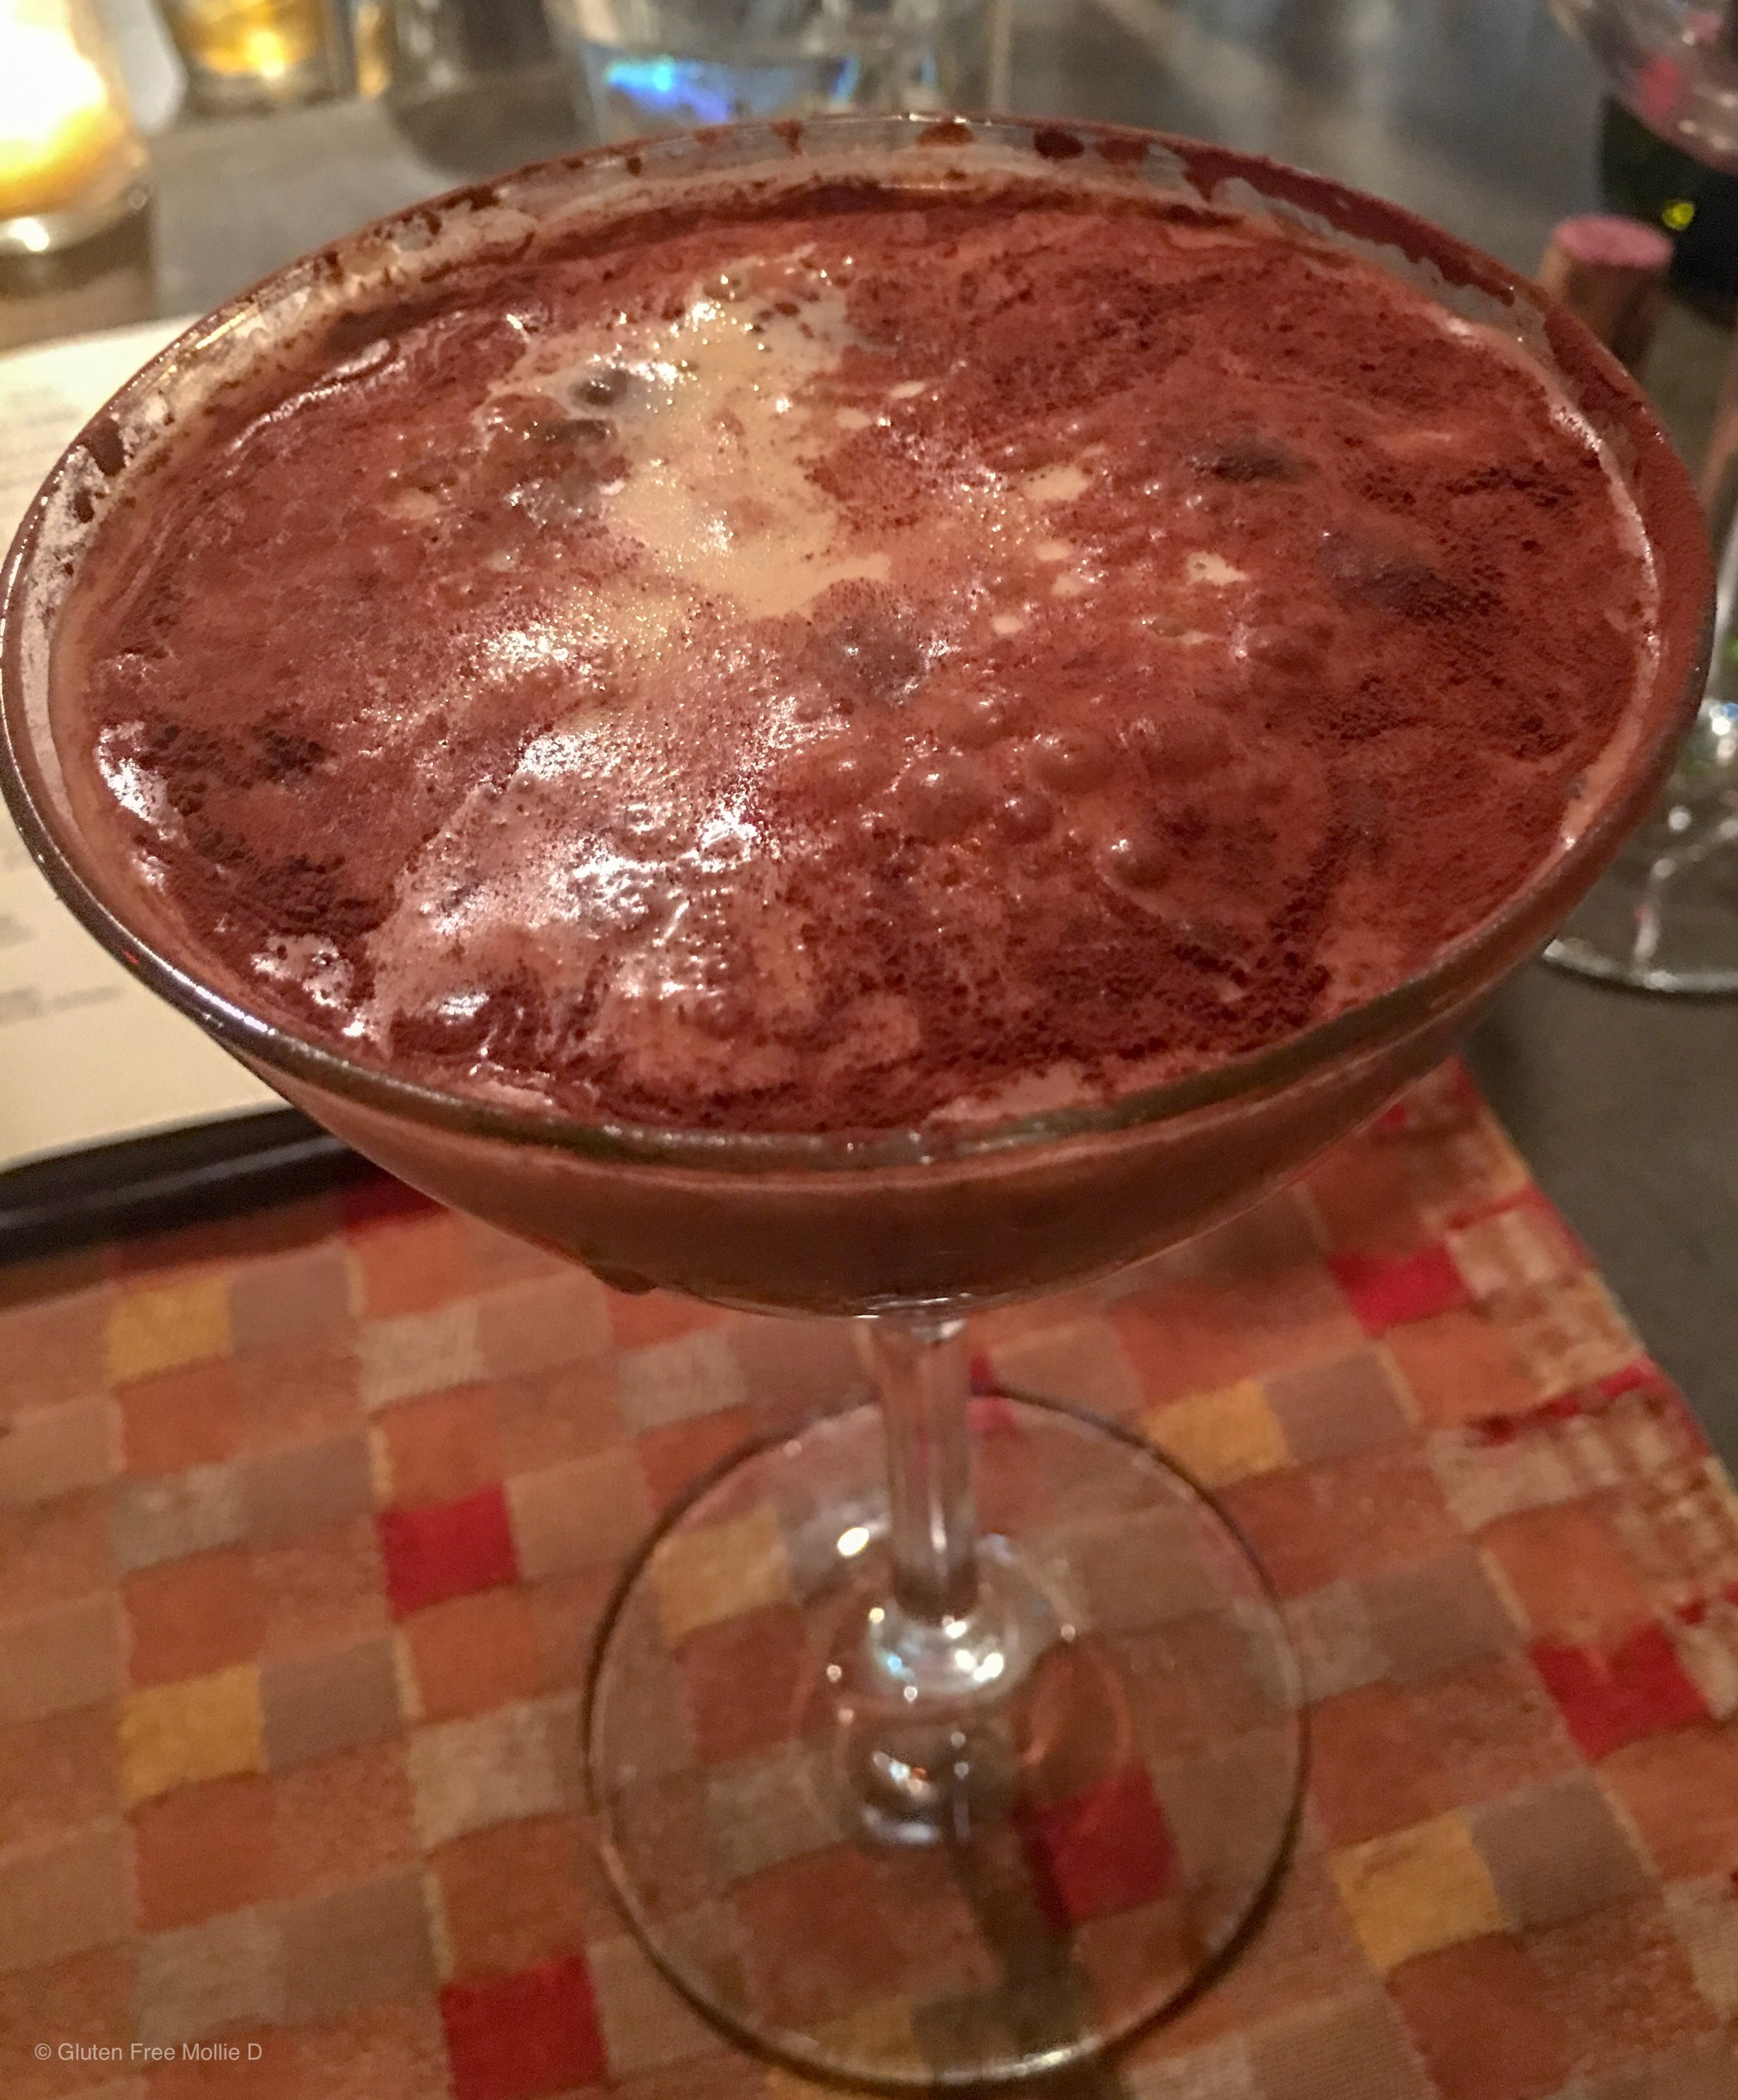 Espresso martini with cocoa powder